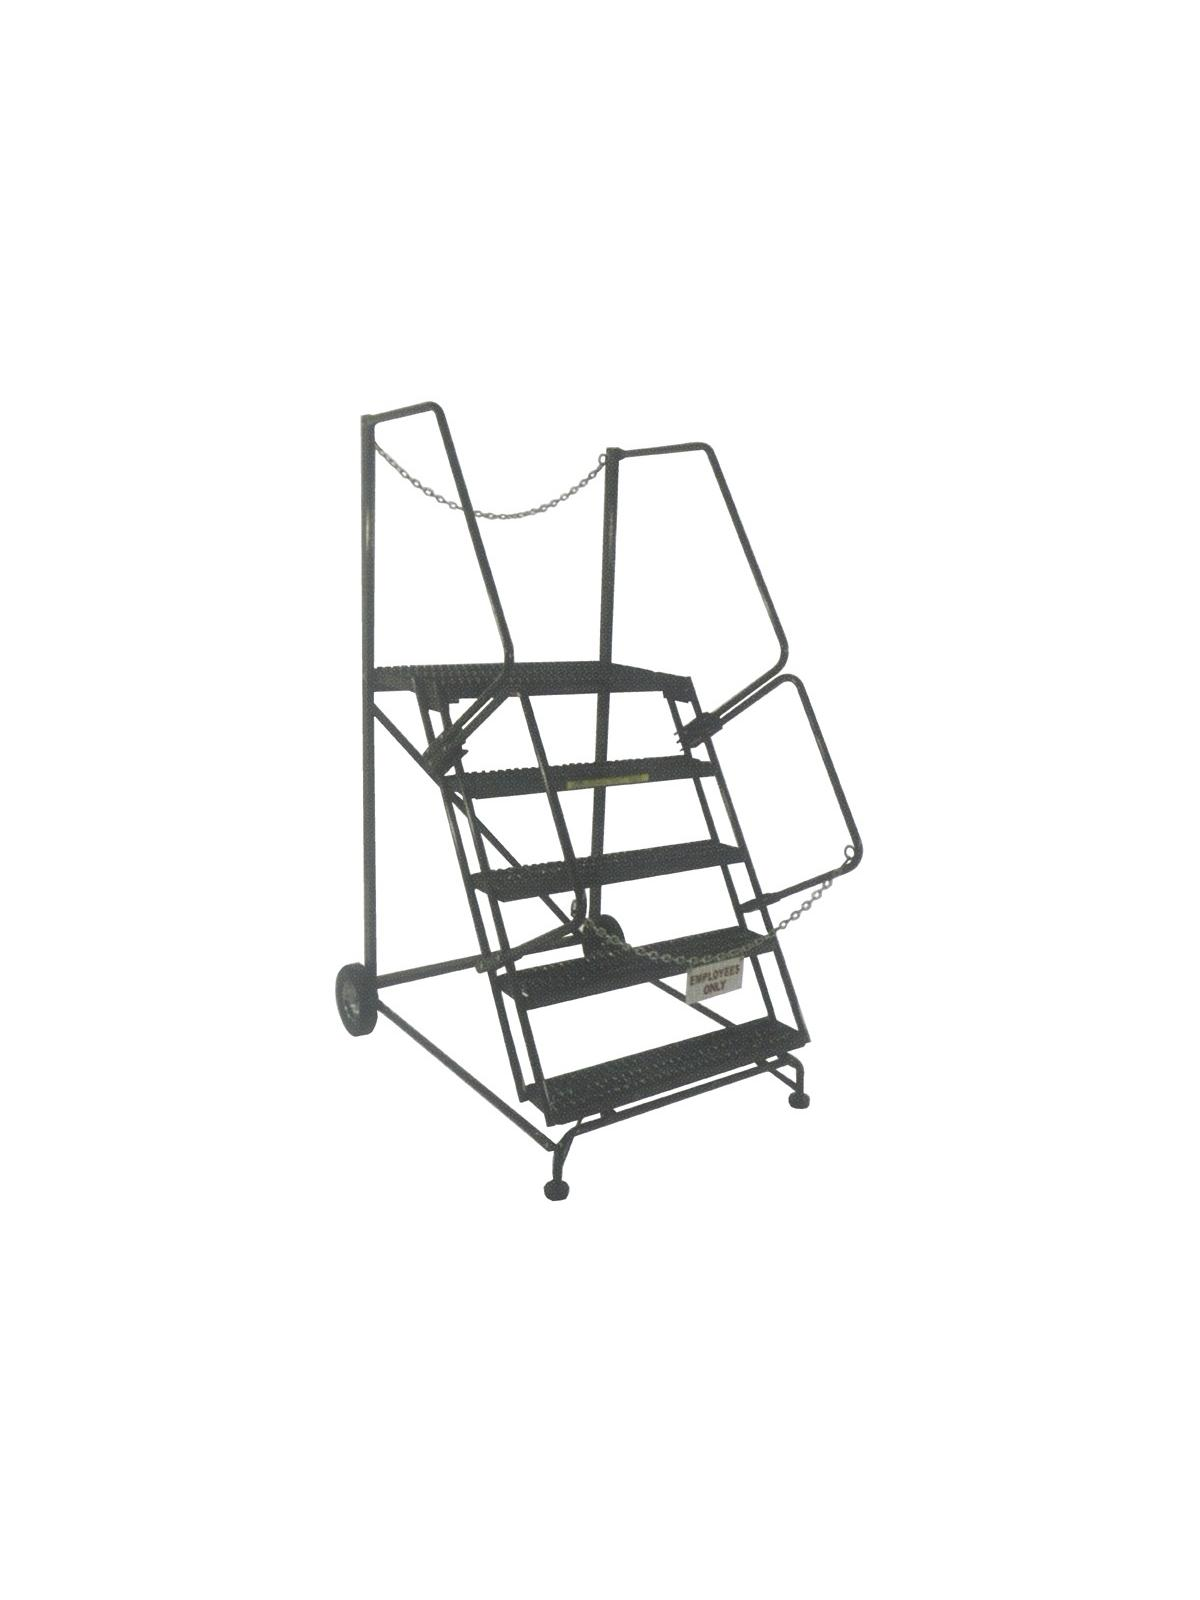 Truck Dock Access Ladder Cal Osha At Nationwide Industrial